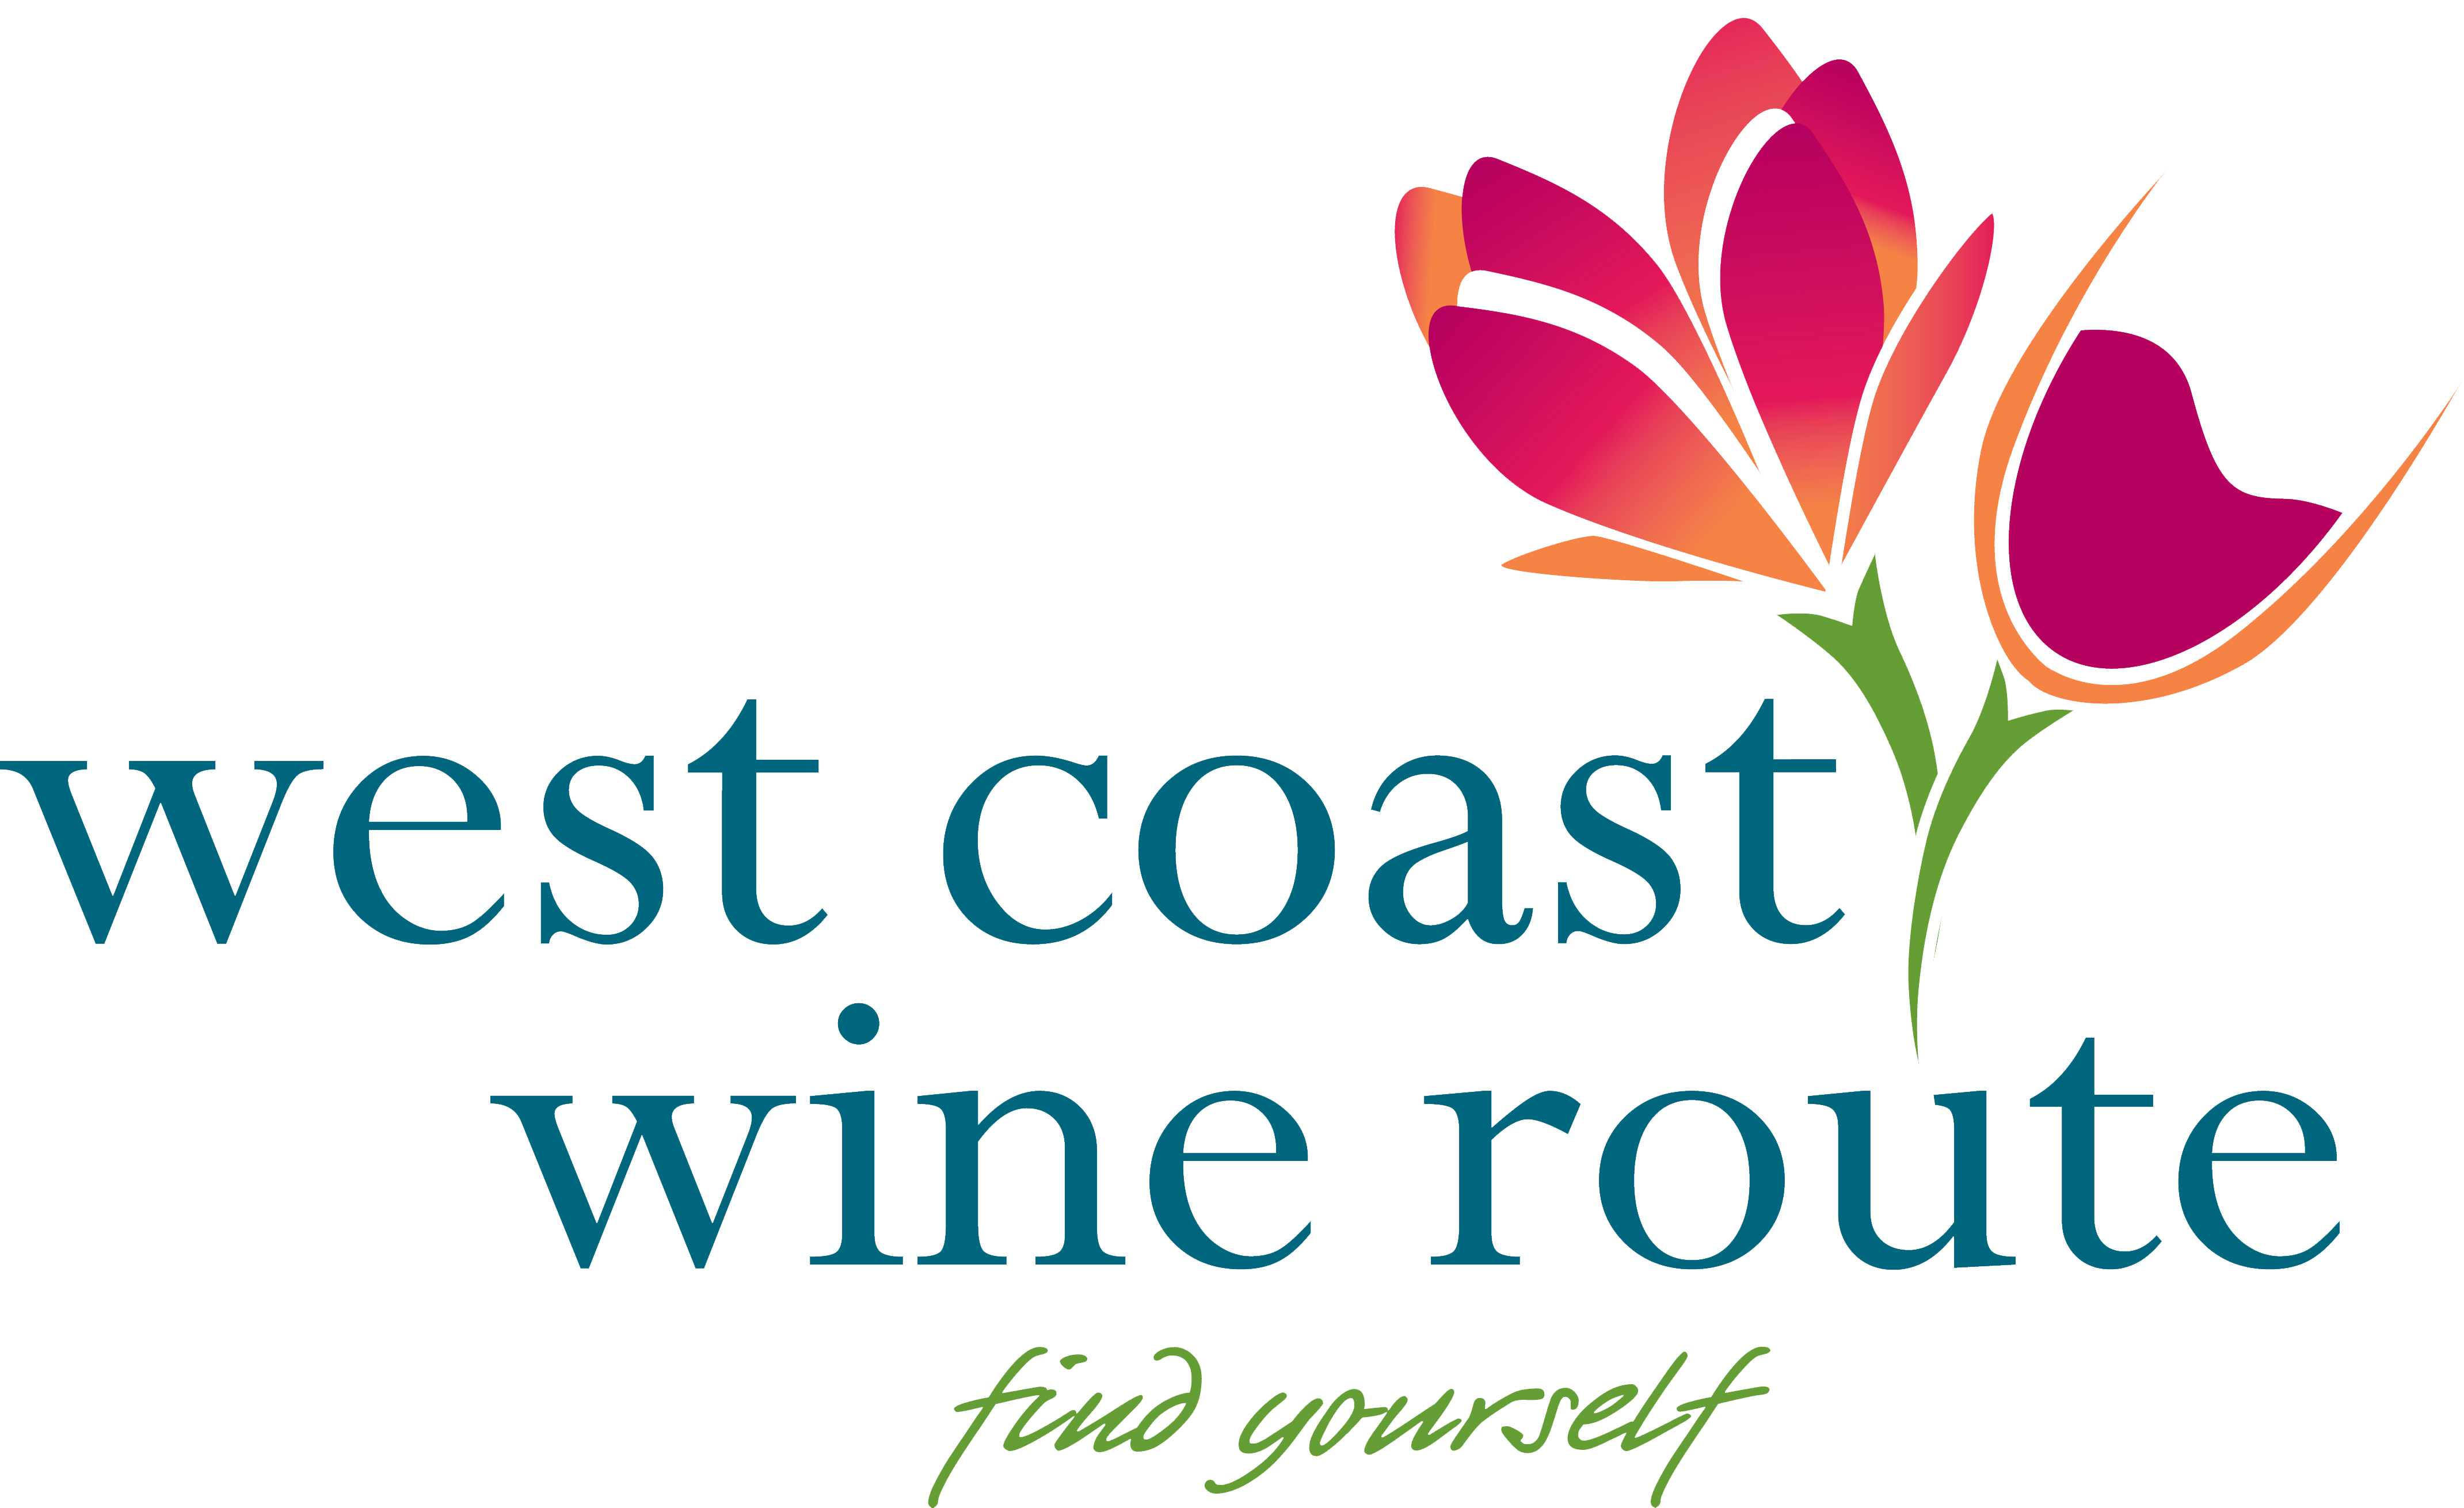 west coast wine route logo